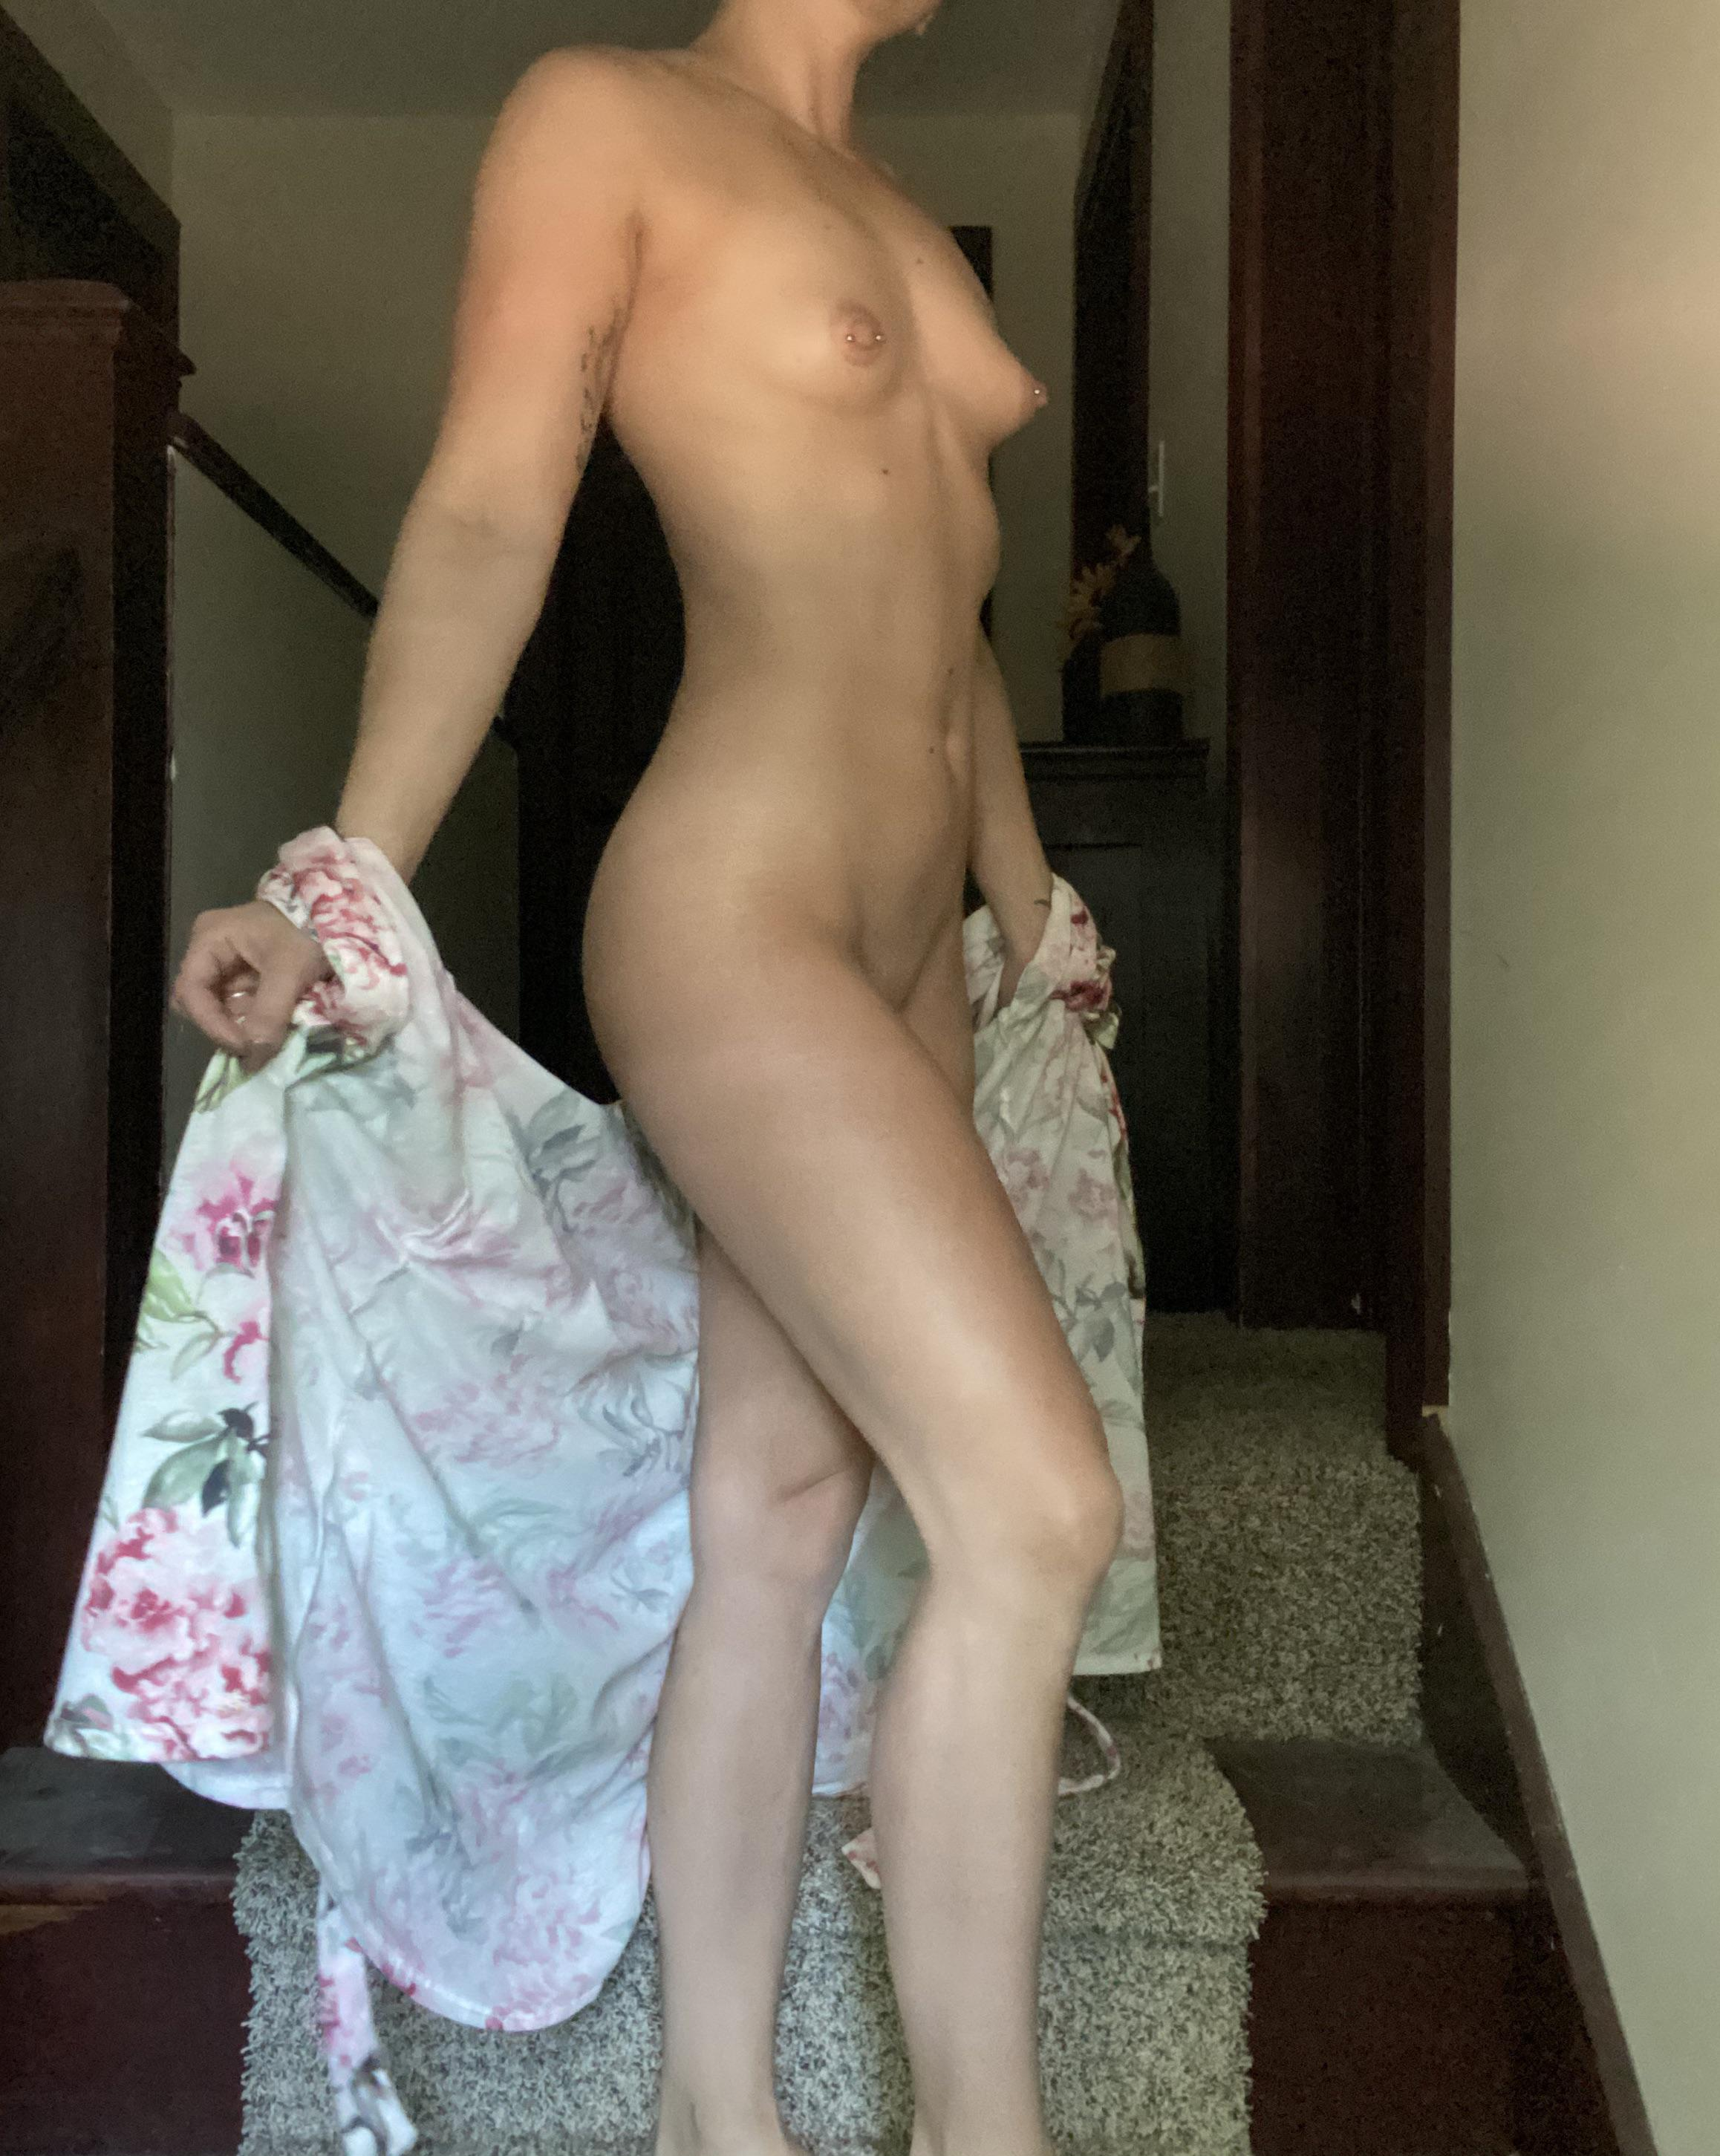 Want To Finish Taking Off My Robe?